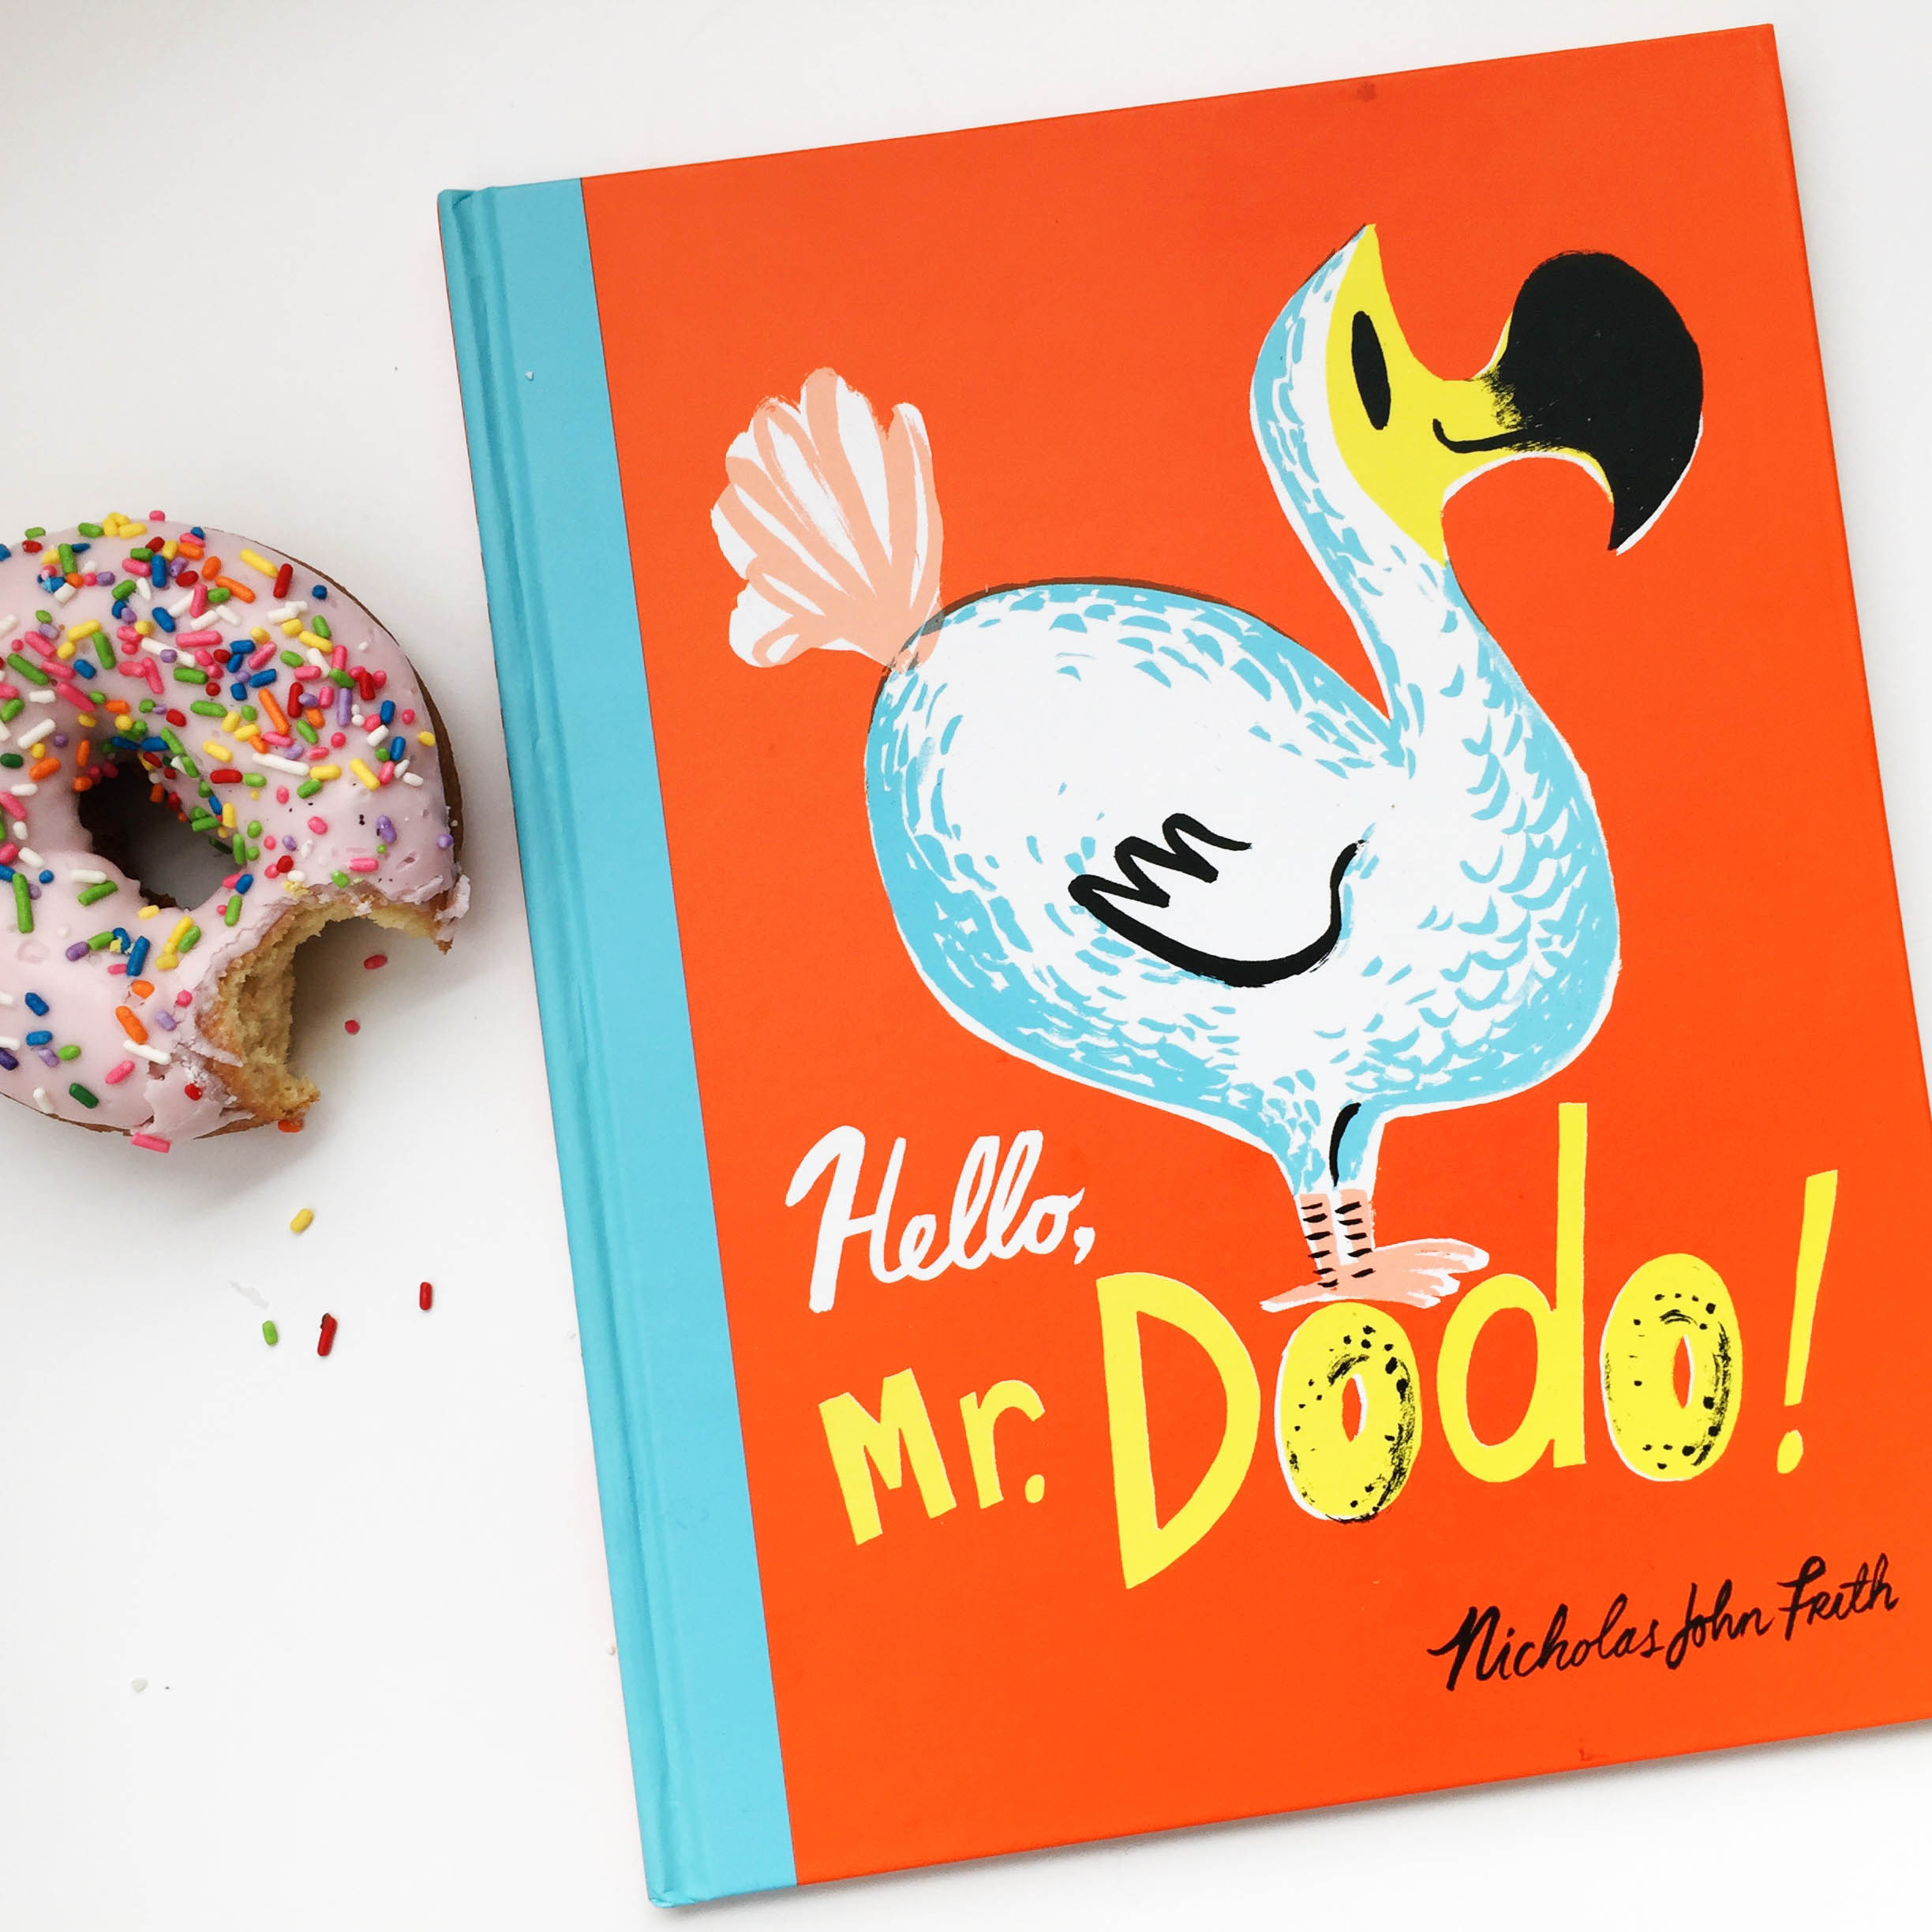 Hello, Mr Dodo by Nicholas John Frith